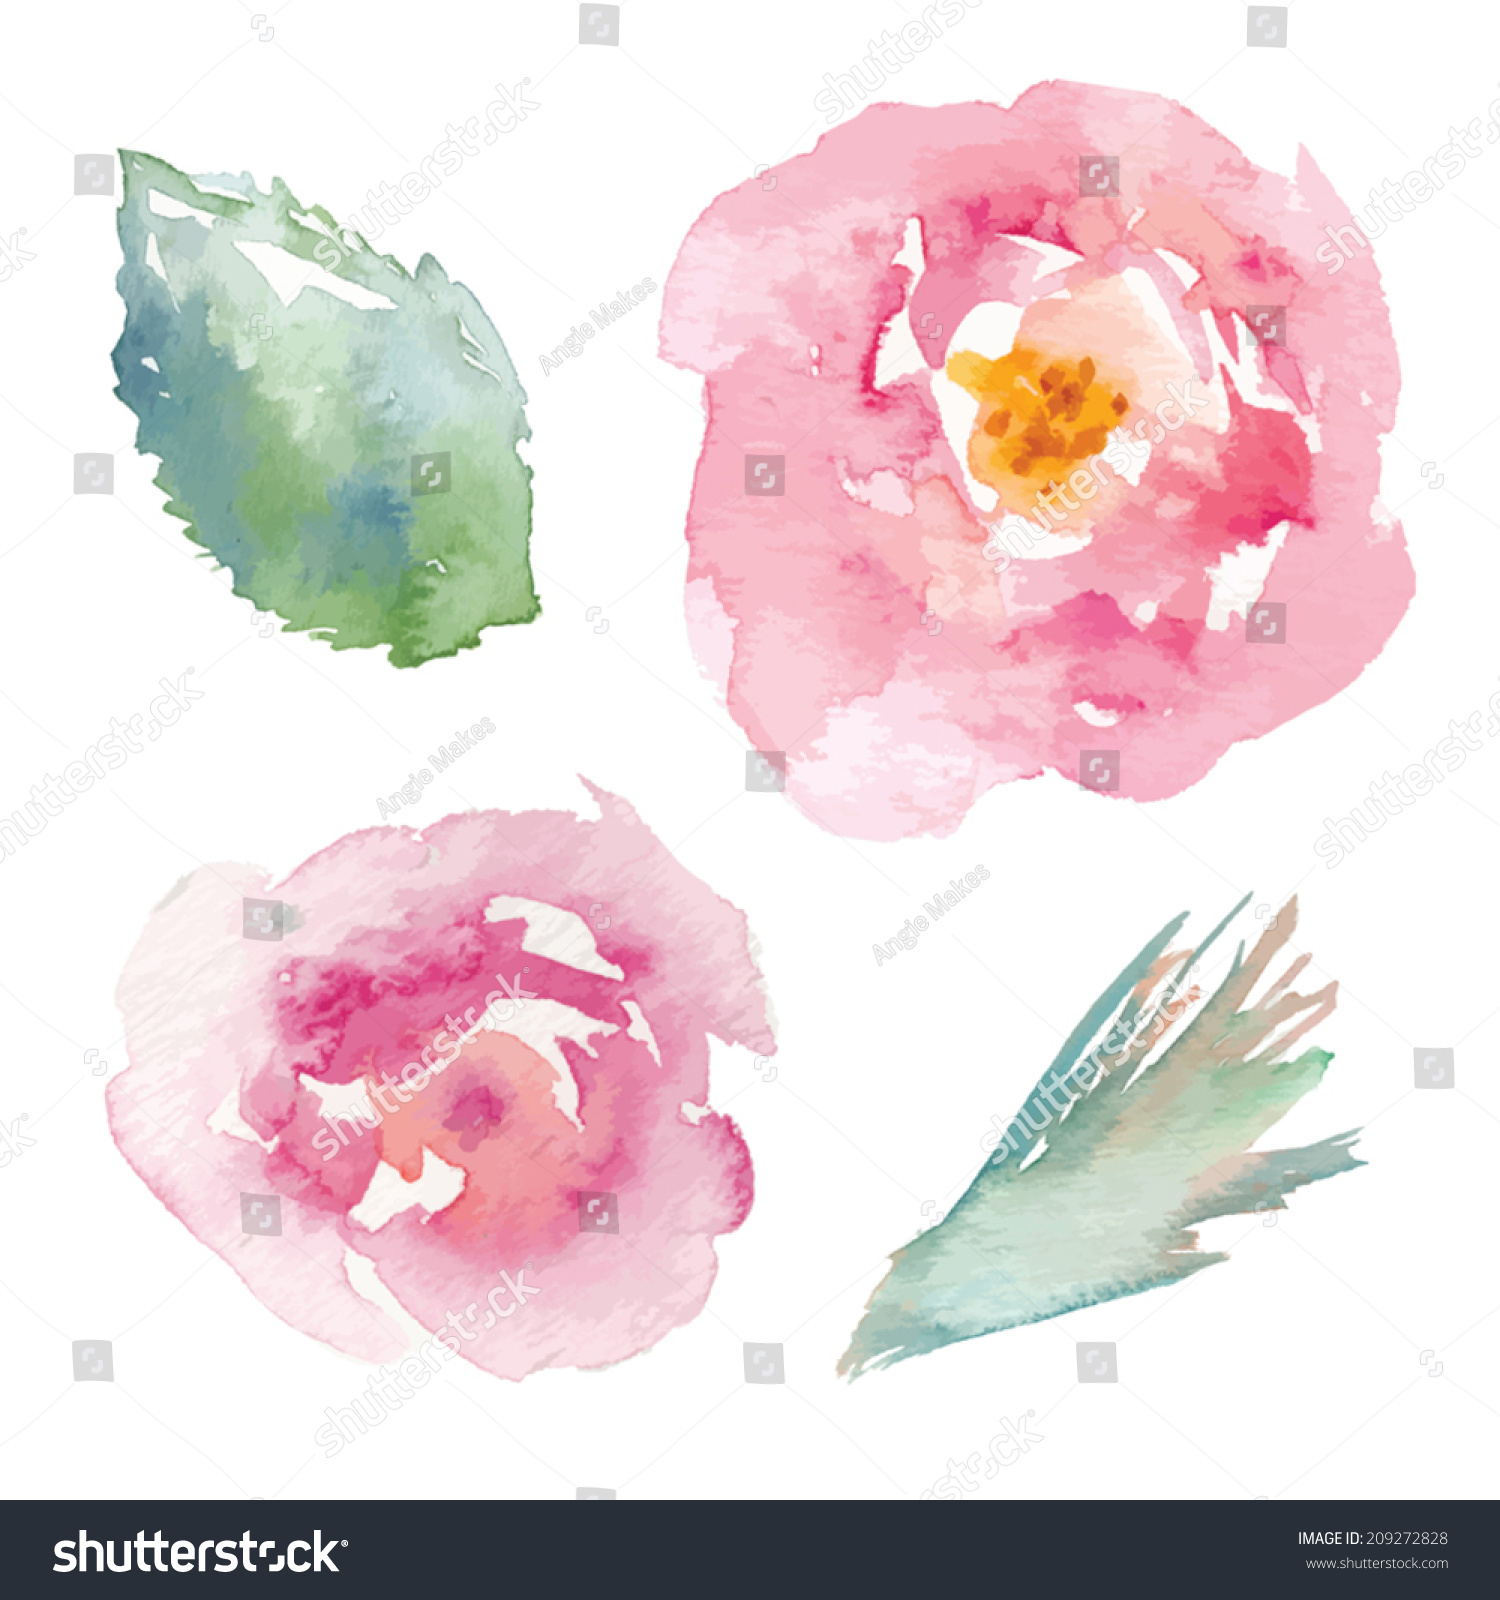 Watercolor Flower Vector Watercolor Rose Vector Stock Vector ...